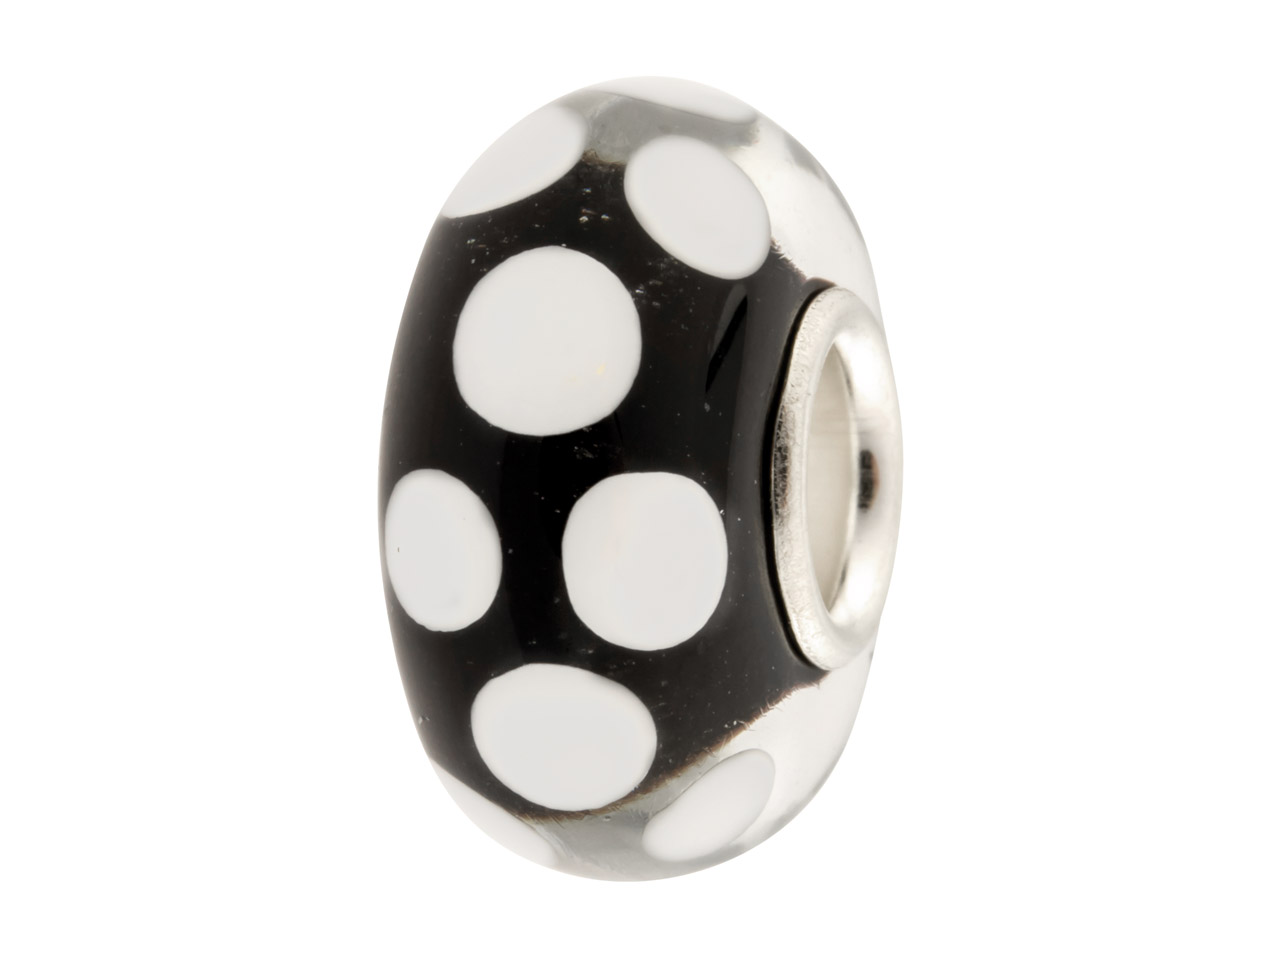 Glass Charm Bead, Black With White Dots, Sterling Silver Core